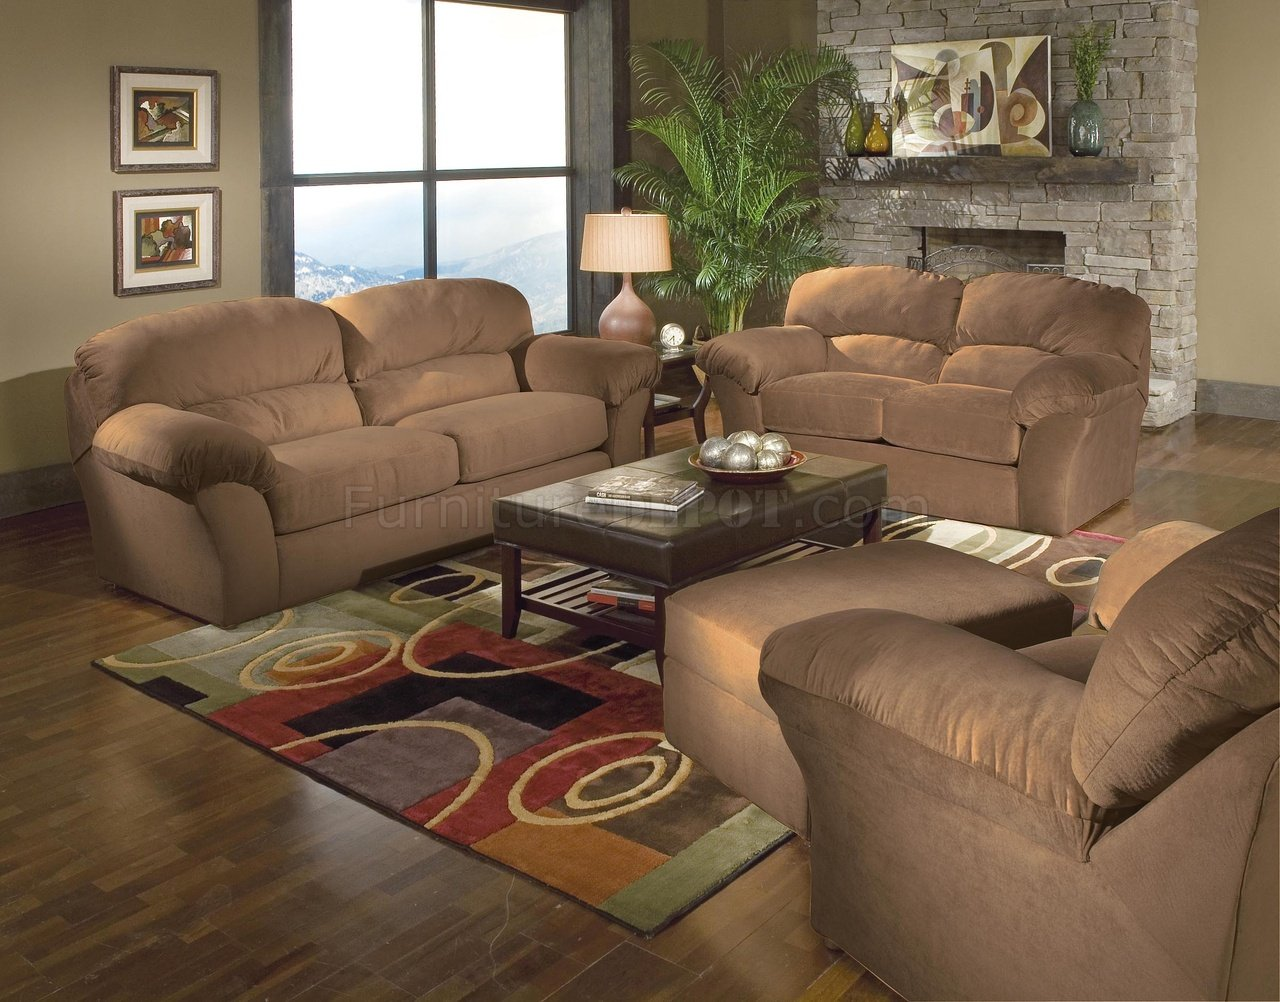 Saddle Mircro Suede Casual Living Room W/Sewn-on Arm Pillows